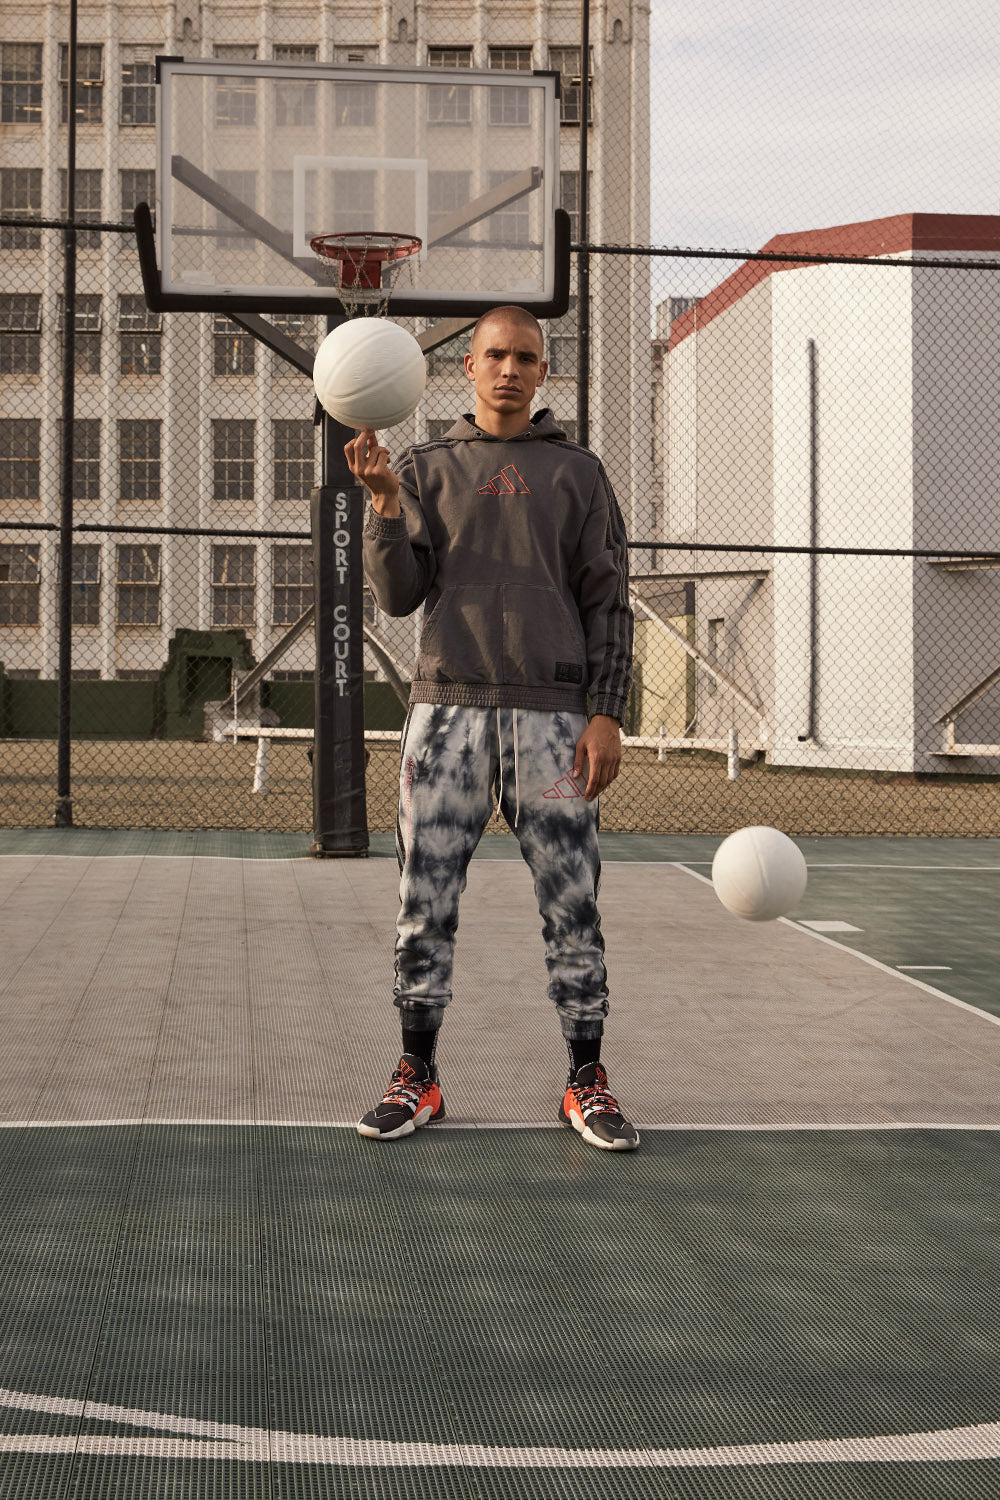 DP adidas Basketball x Harden pants / black